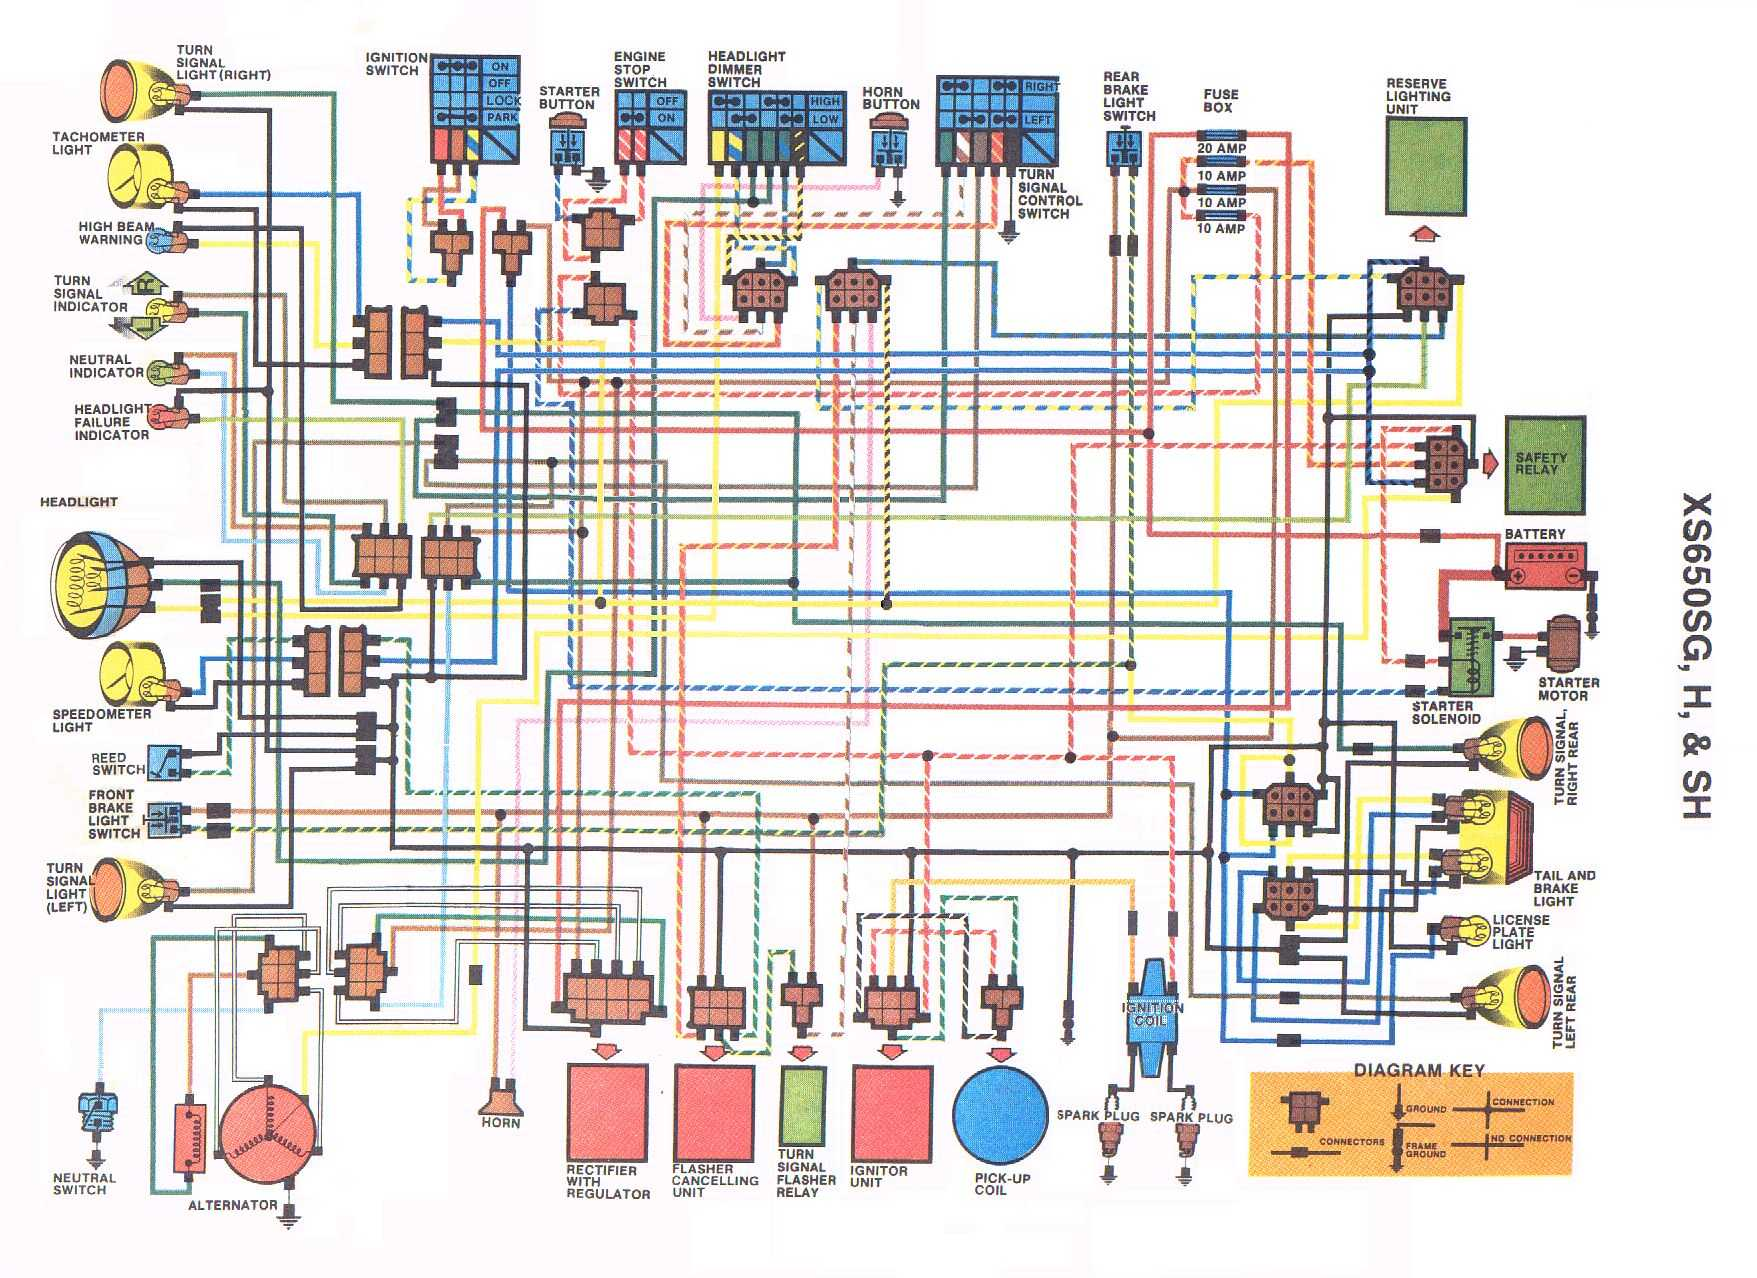 1976 911 porsche wiring diagram  1976  free engine image